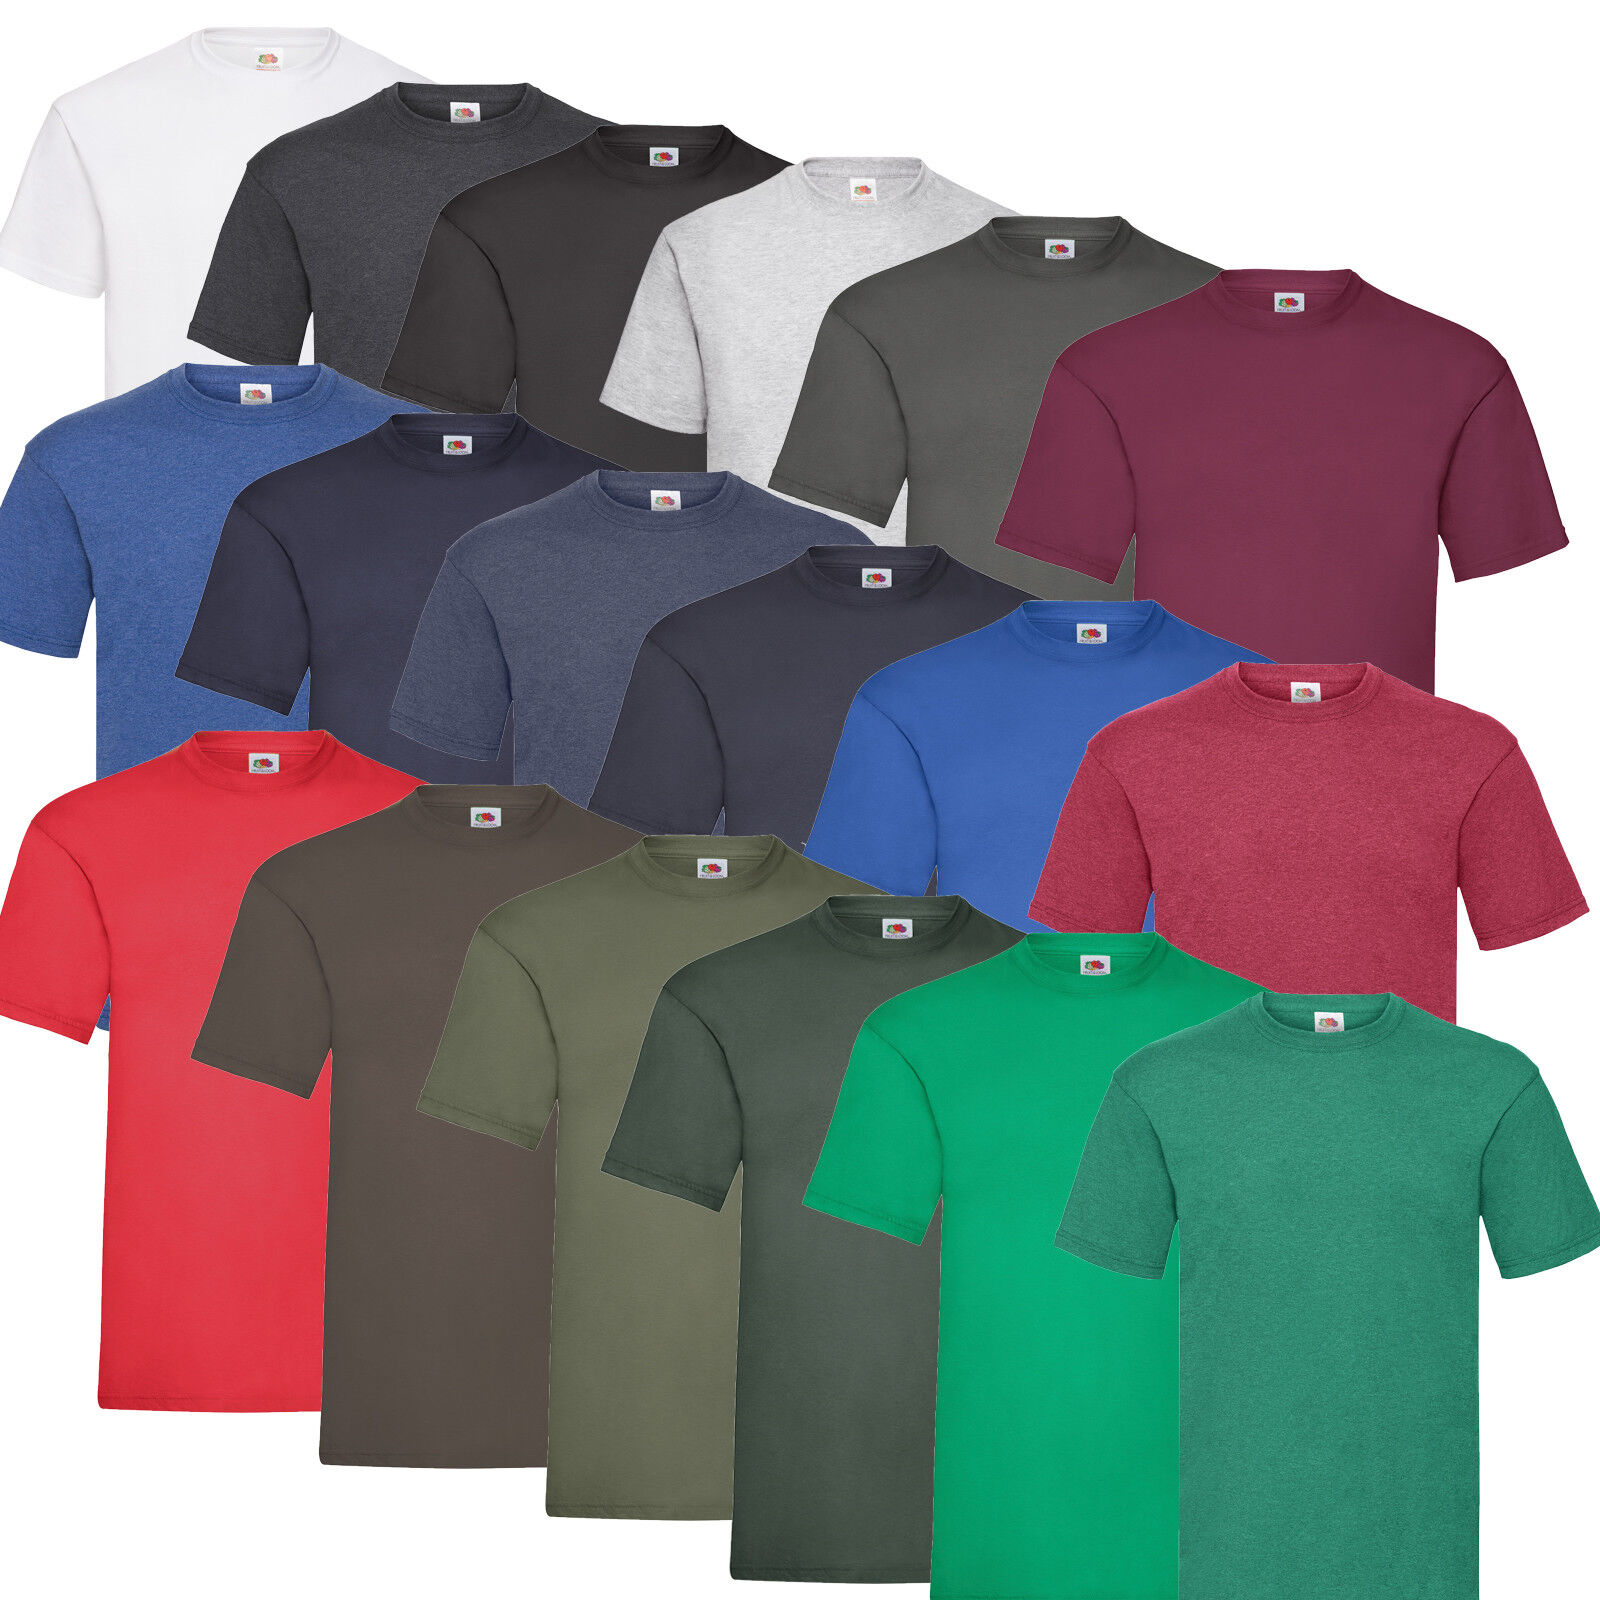 10 FRUIT OF THE LOOM T SHIRTS SETS VALUEWEIGHT BAUMWOLLE M L XL XXL SHIRTS NEU